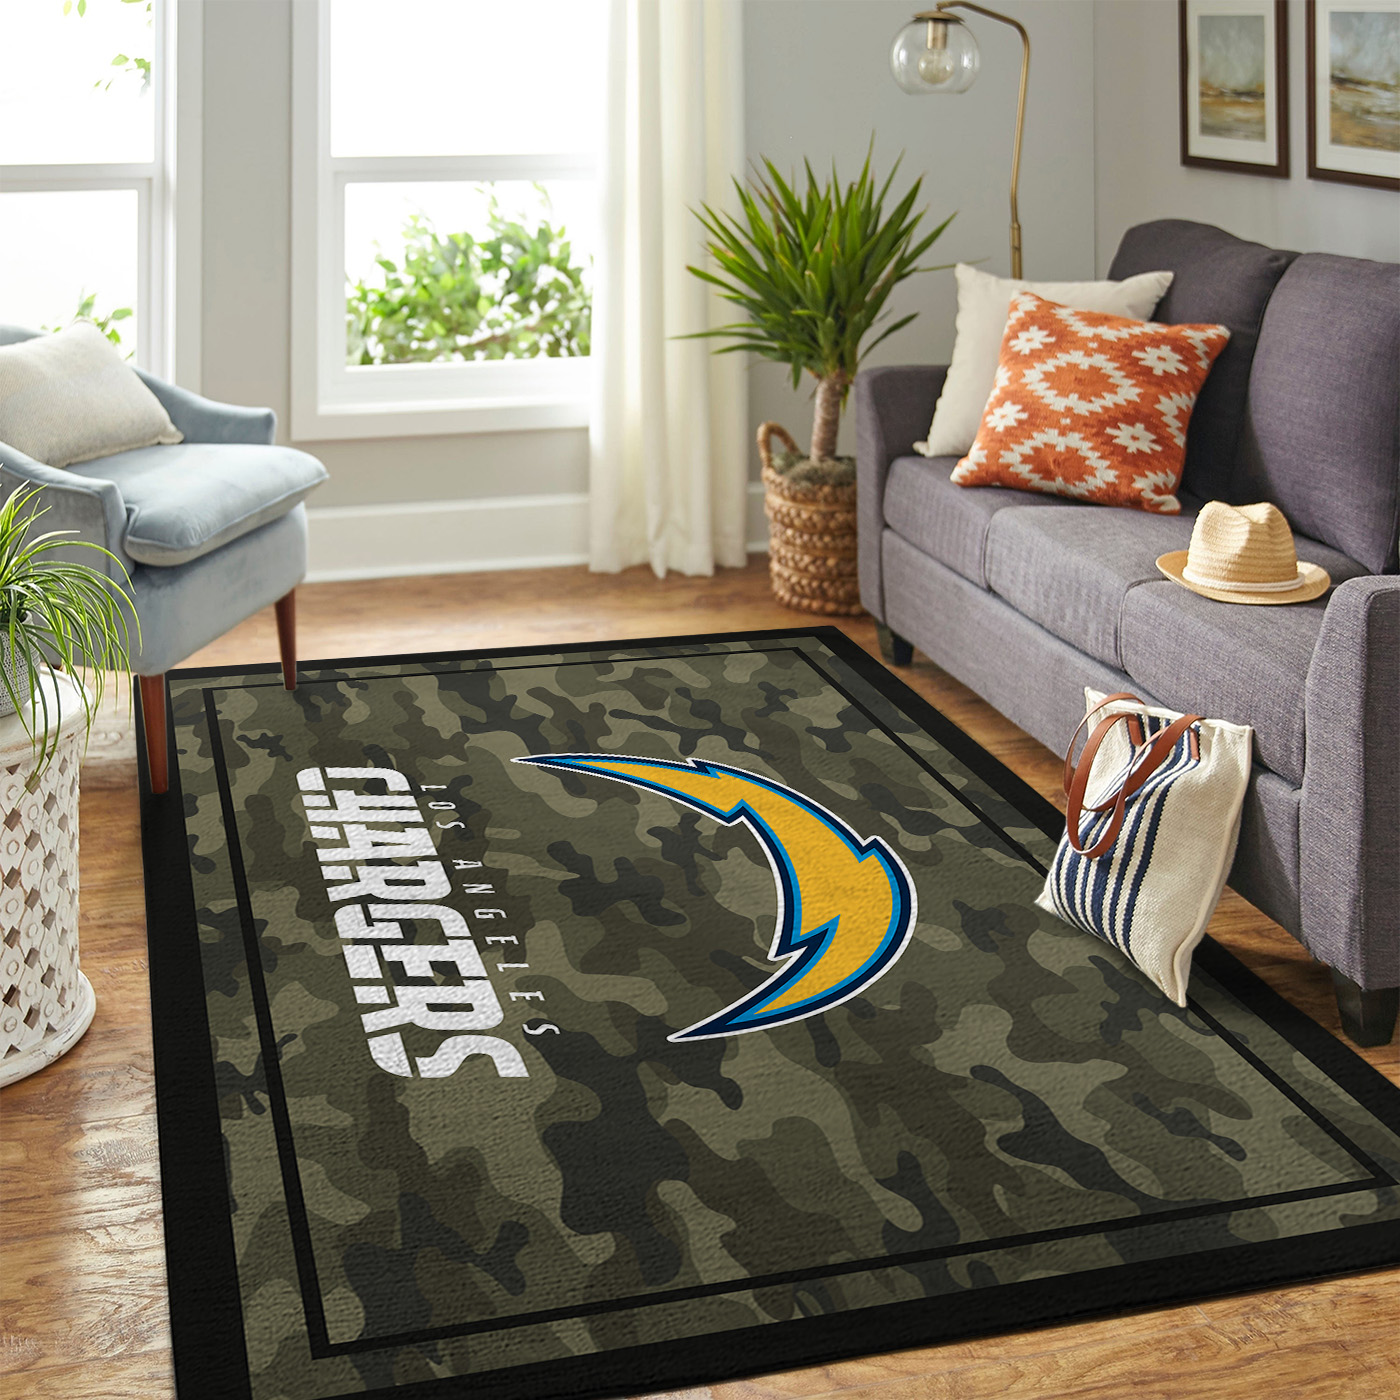 Los Angeles Chargers NFL Team Logo Camo Style Nice Gift Home Decor Area Rug  Rugs For Living Room